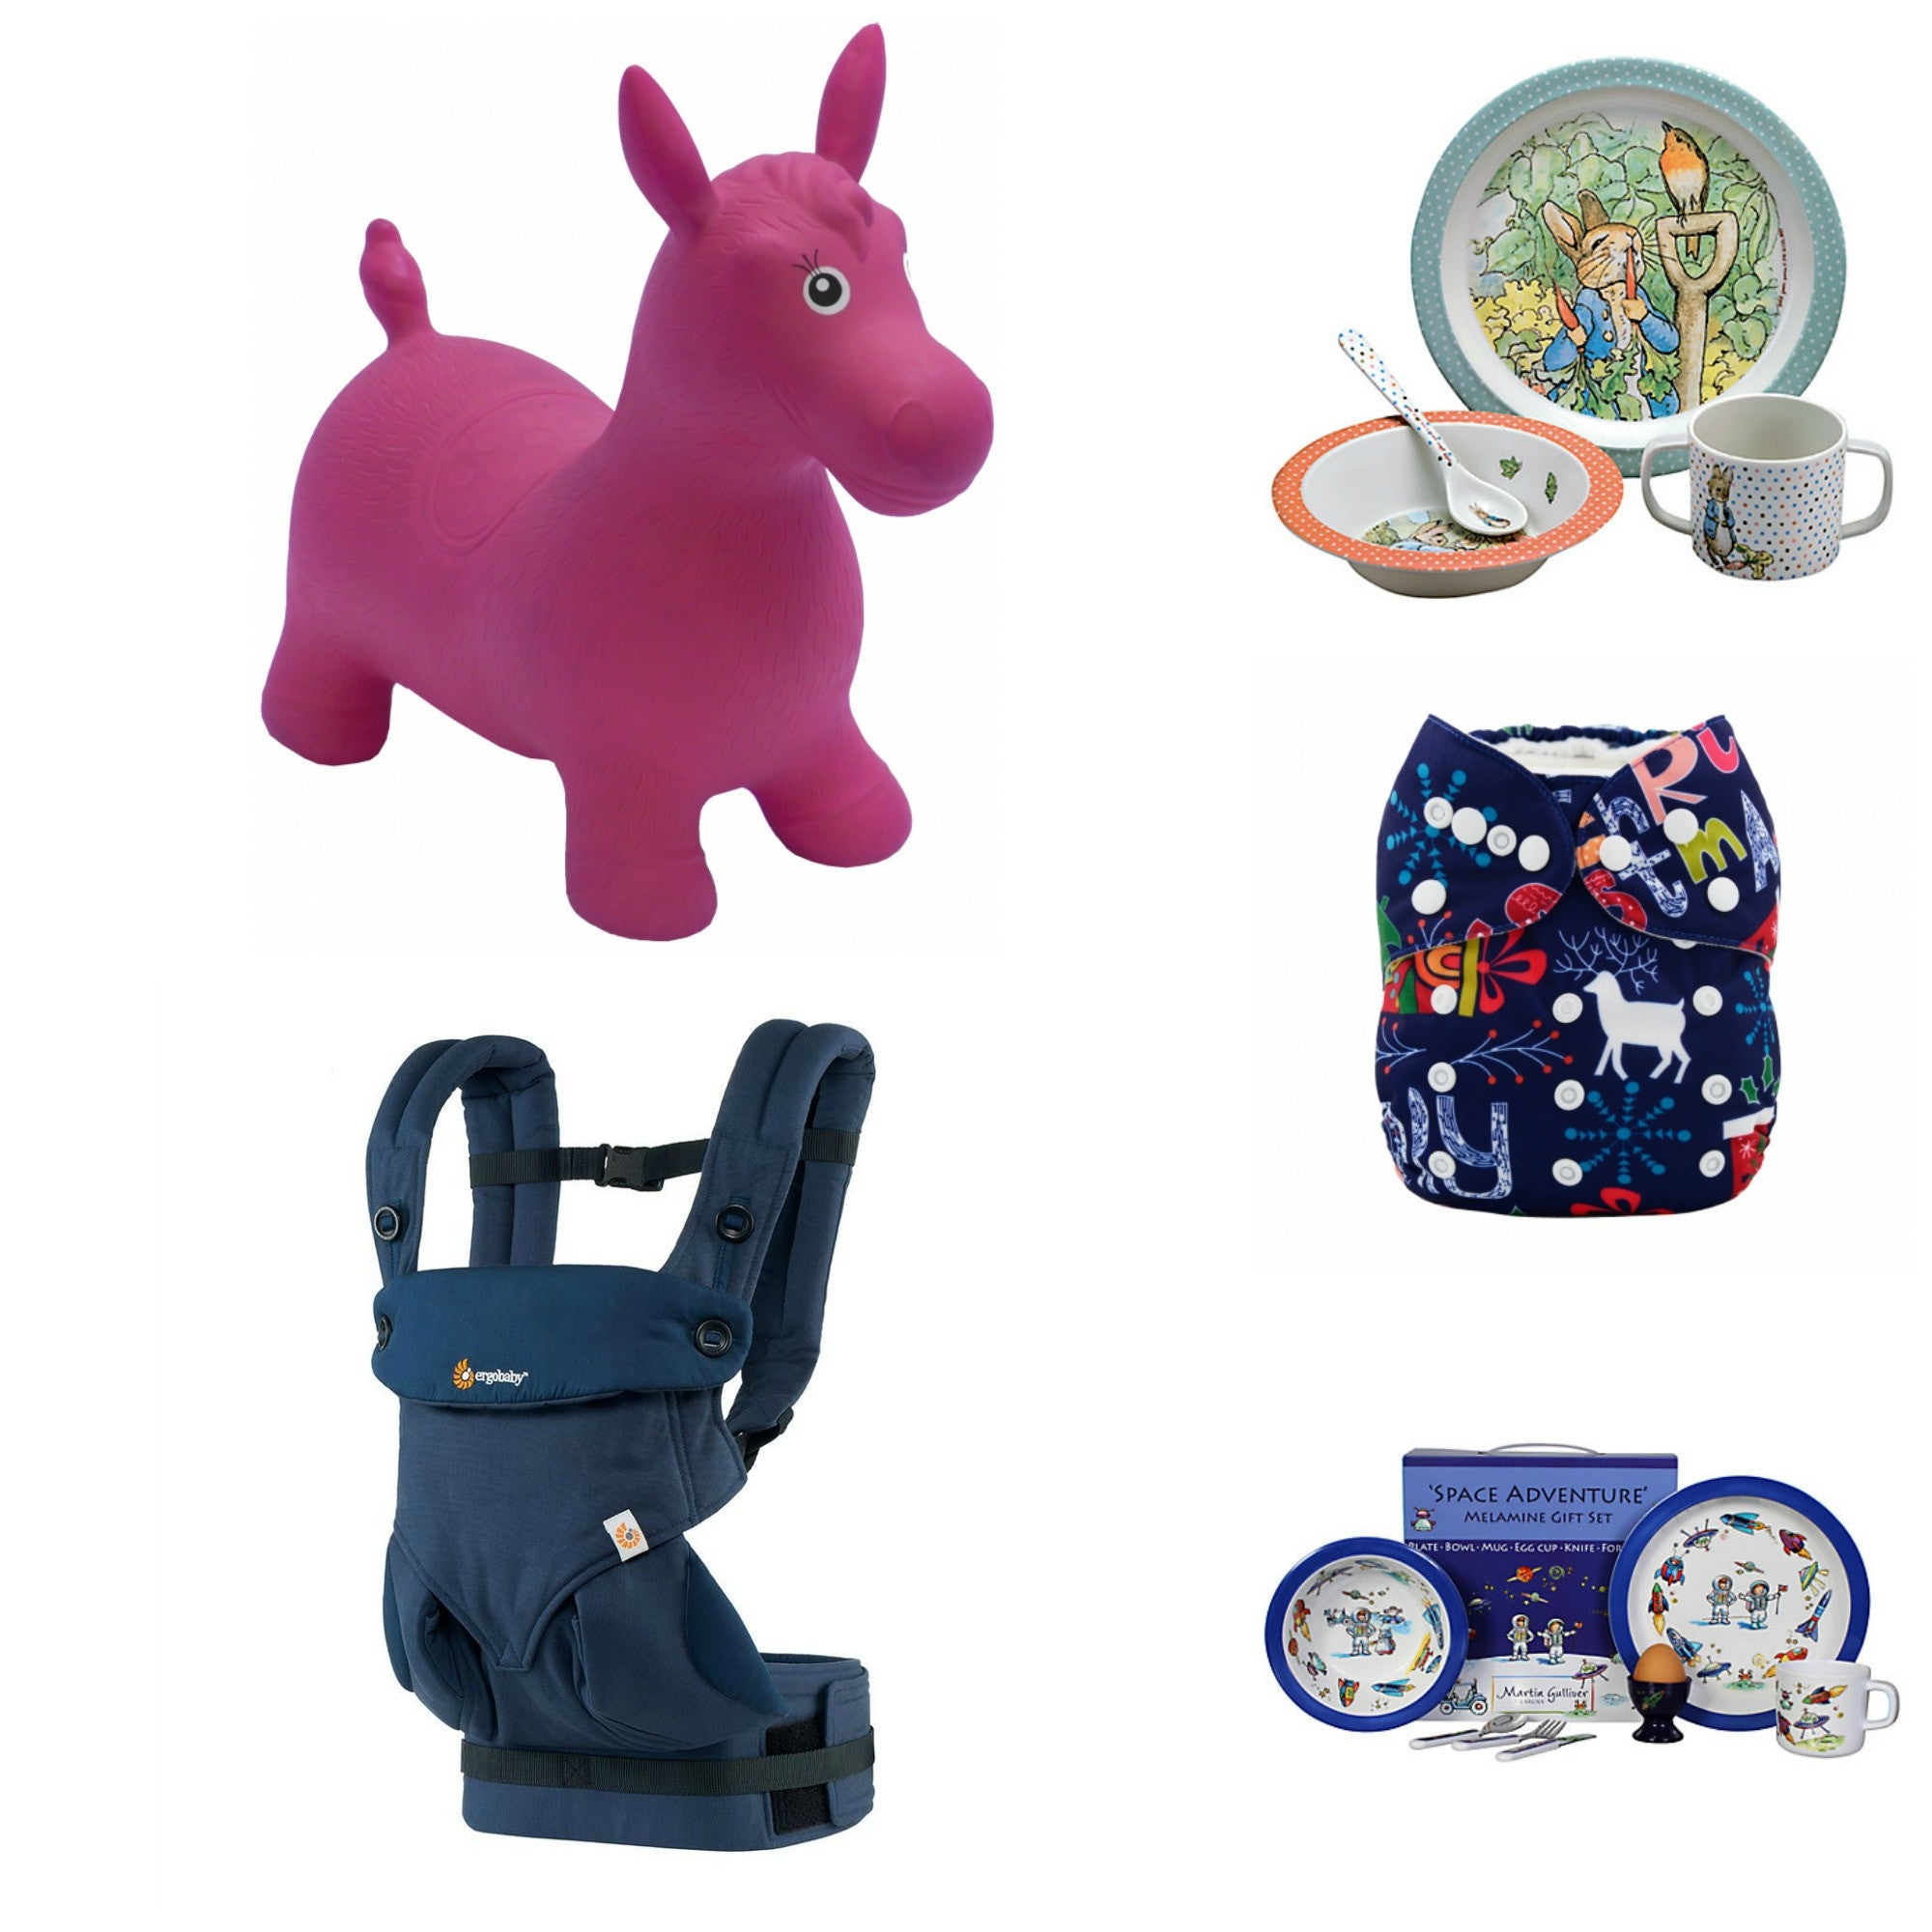 Sacksful of Super Gifts for Babies